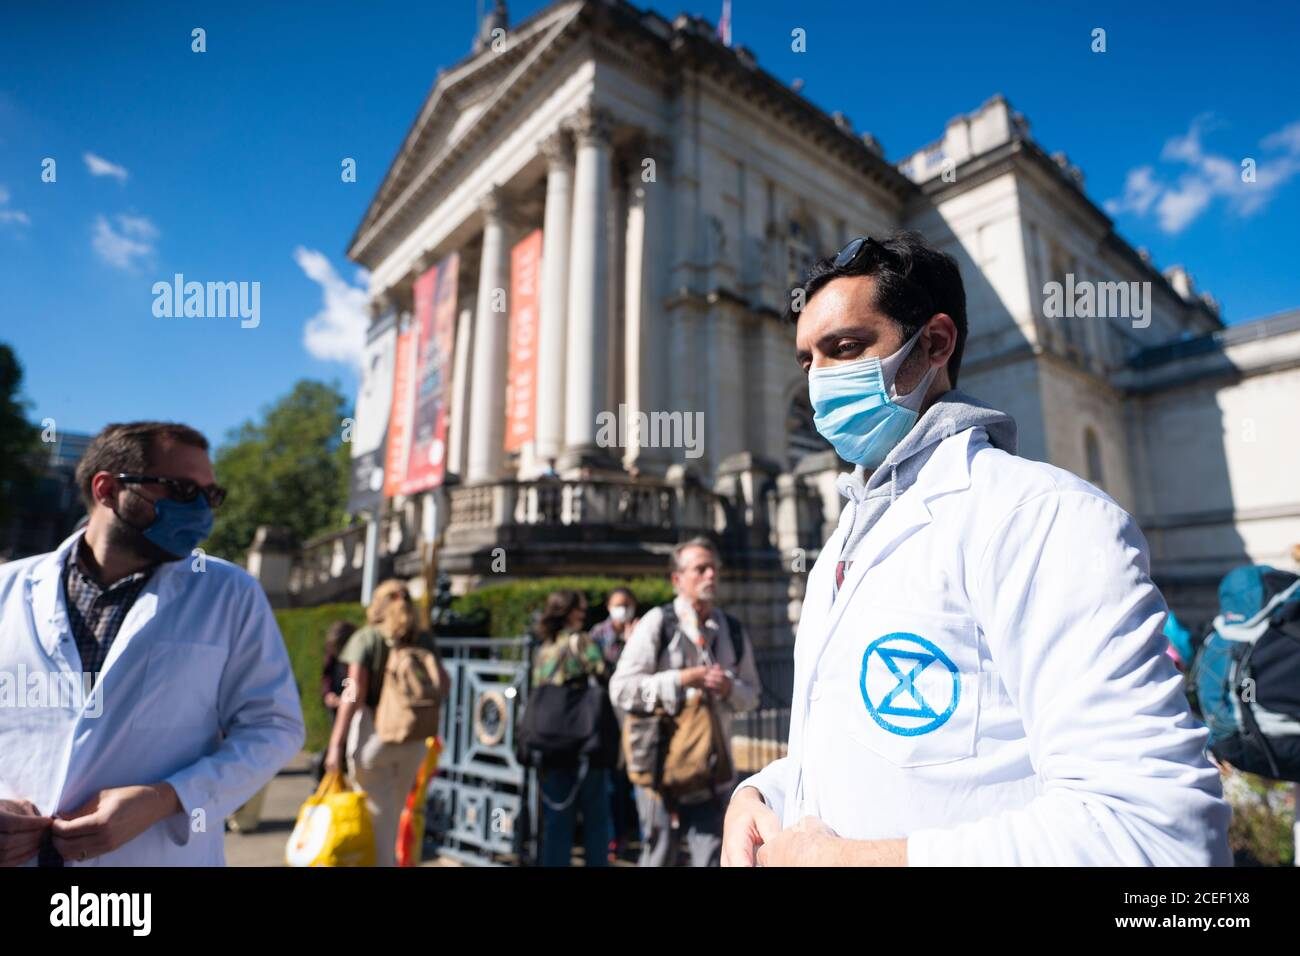 London, UK. Tuesday, September 1, 2020. A protest by Extinction Rebellion in London in support of the Climate and Ecological Emergency (CEE) Bill. Photo: Roger Garfield/Alamy Live News Stock Photo